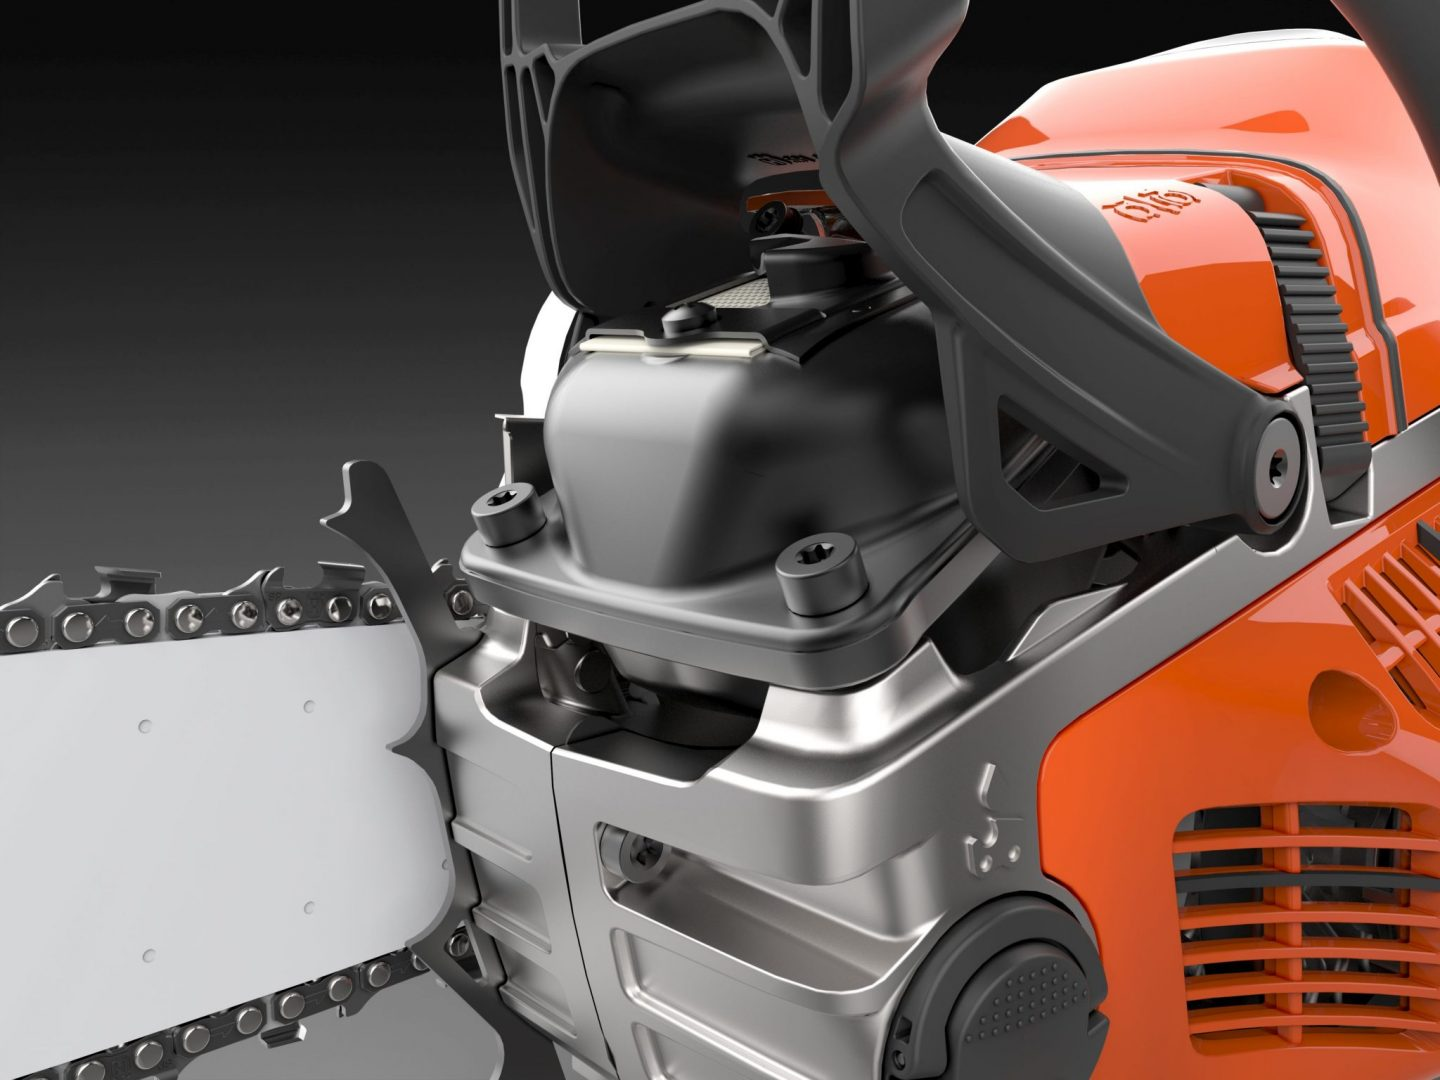 Husqvarna launches 550XP Mark II